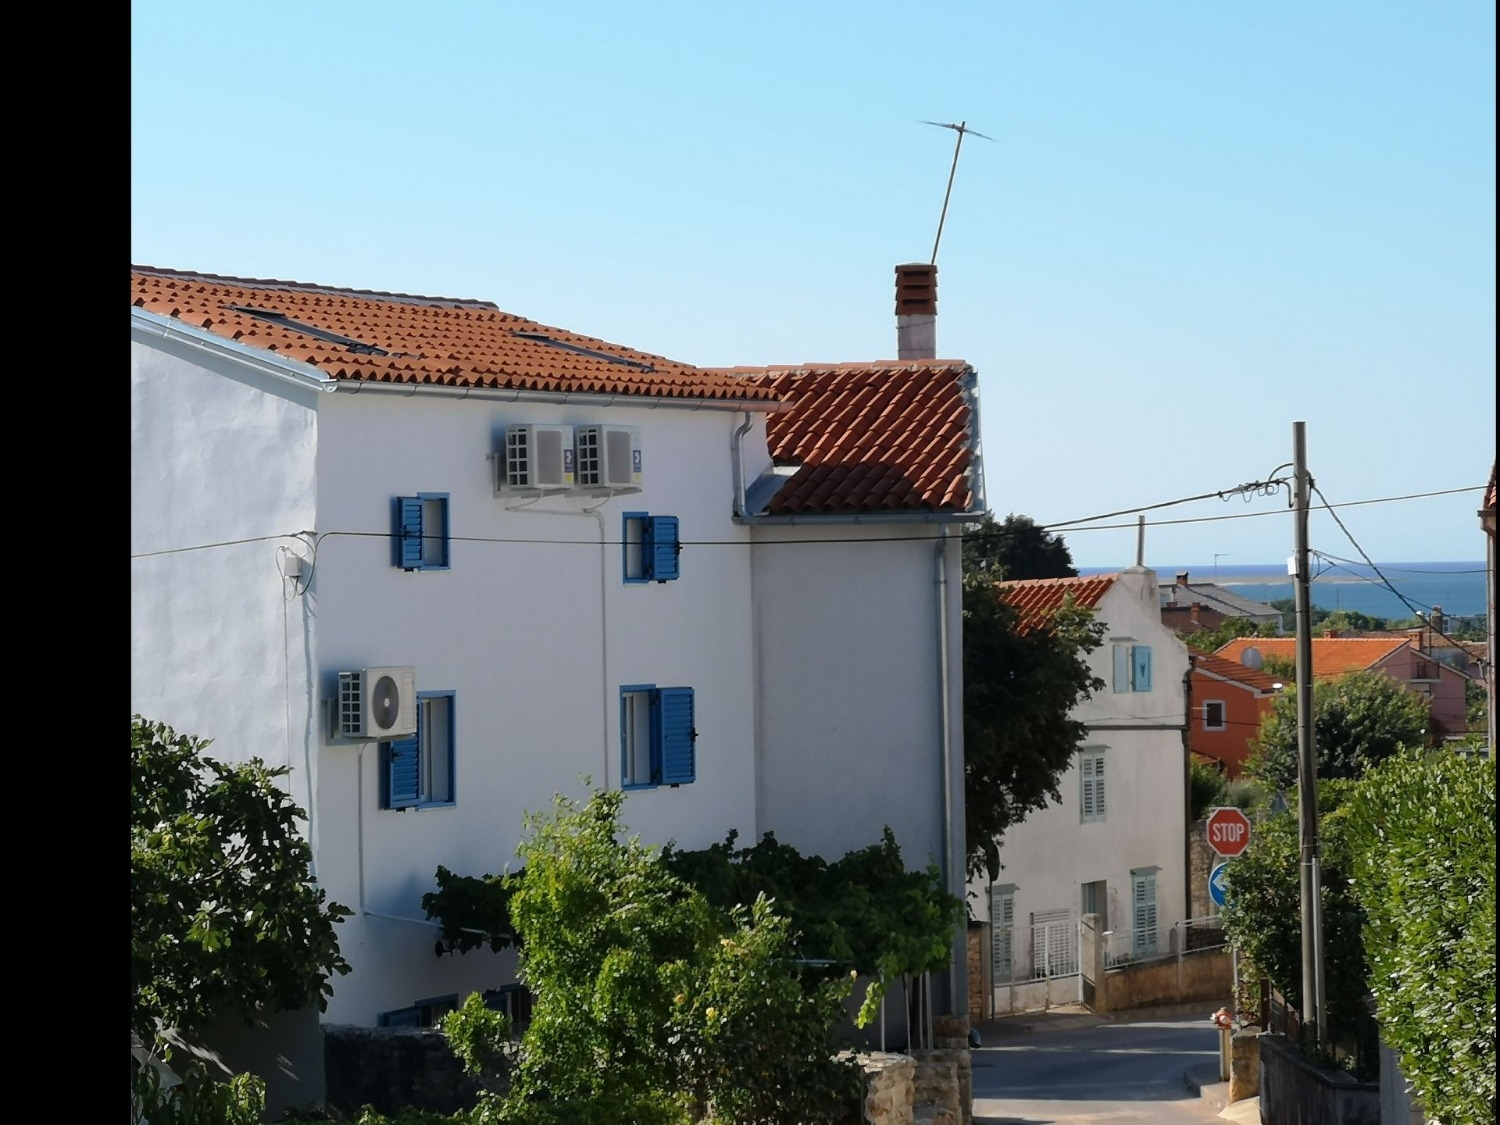 Holiday Homes, Medulin, Pula & south Istria - Holiday houses, villas  Domen